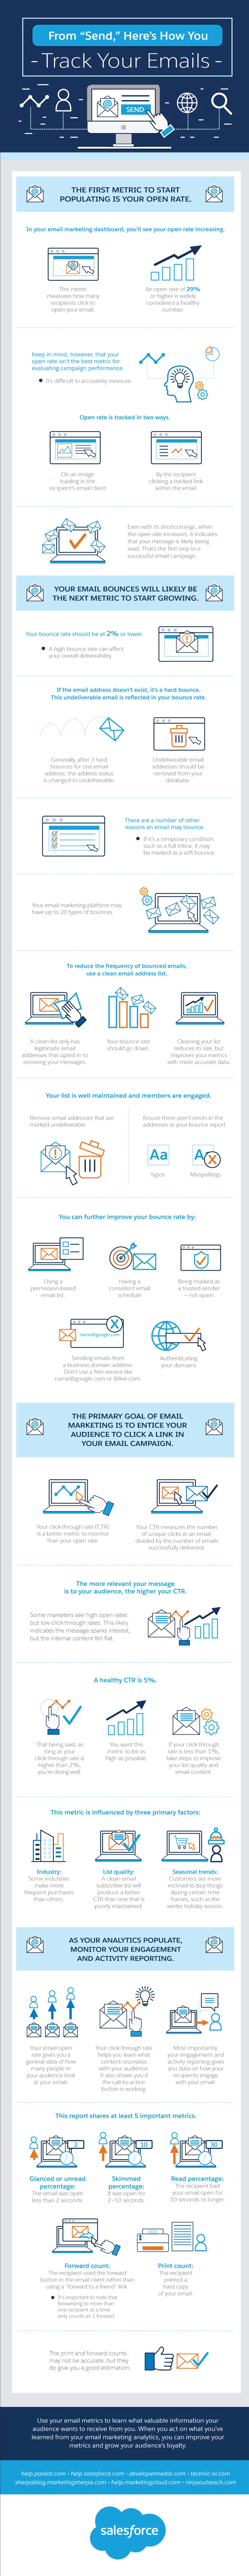 Email tracking tips